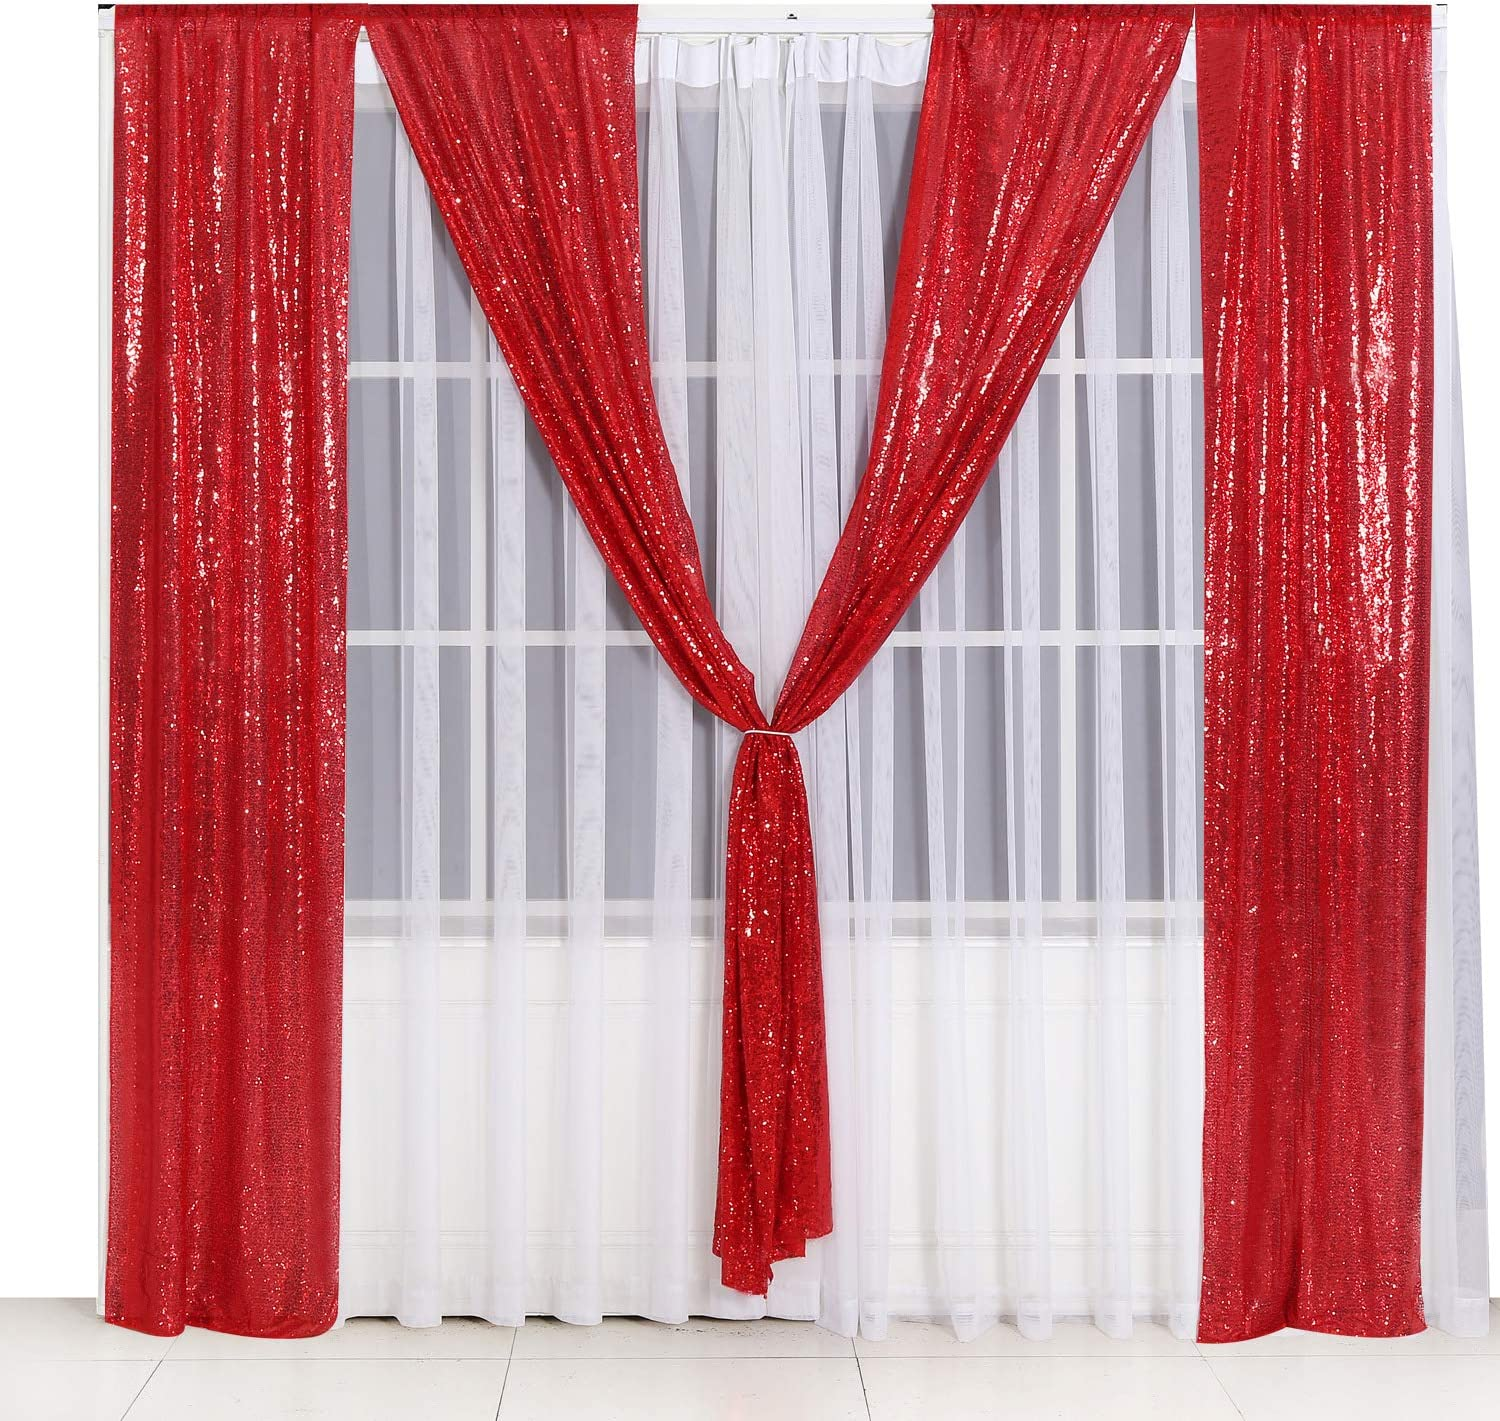 PartyDelight 2ftX8ft Red Sequin Backdrop Curtain Photo Booth for Wedding Party Birthday Decoration Pack of 2.